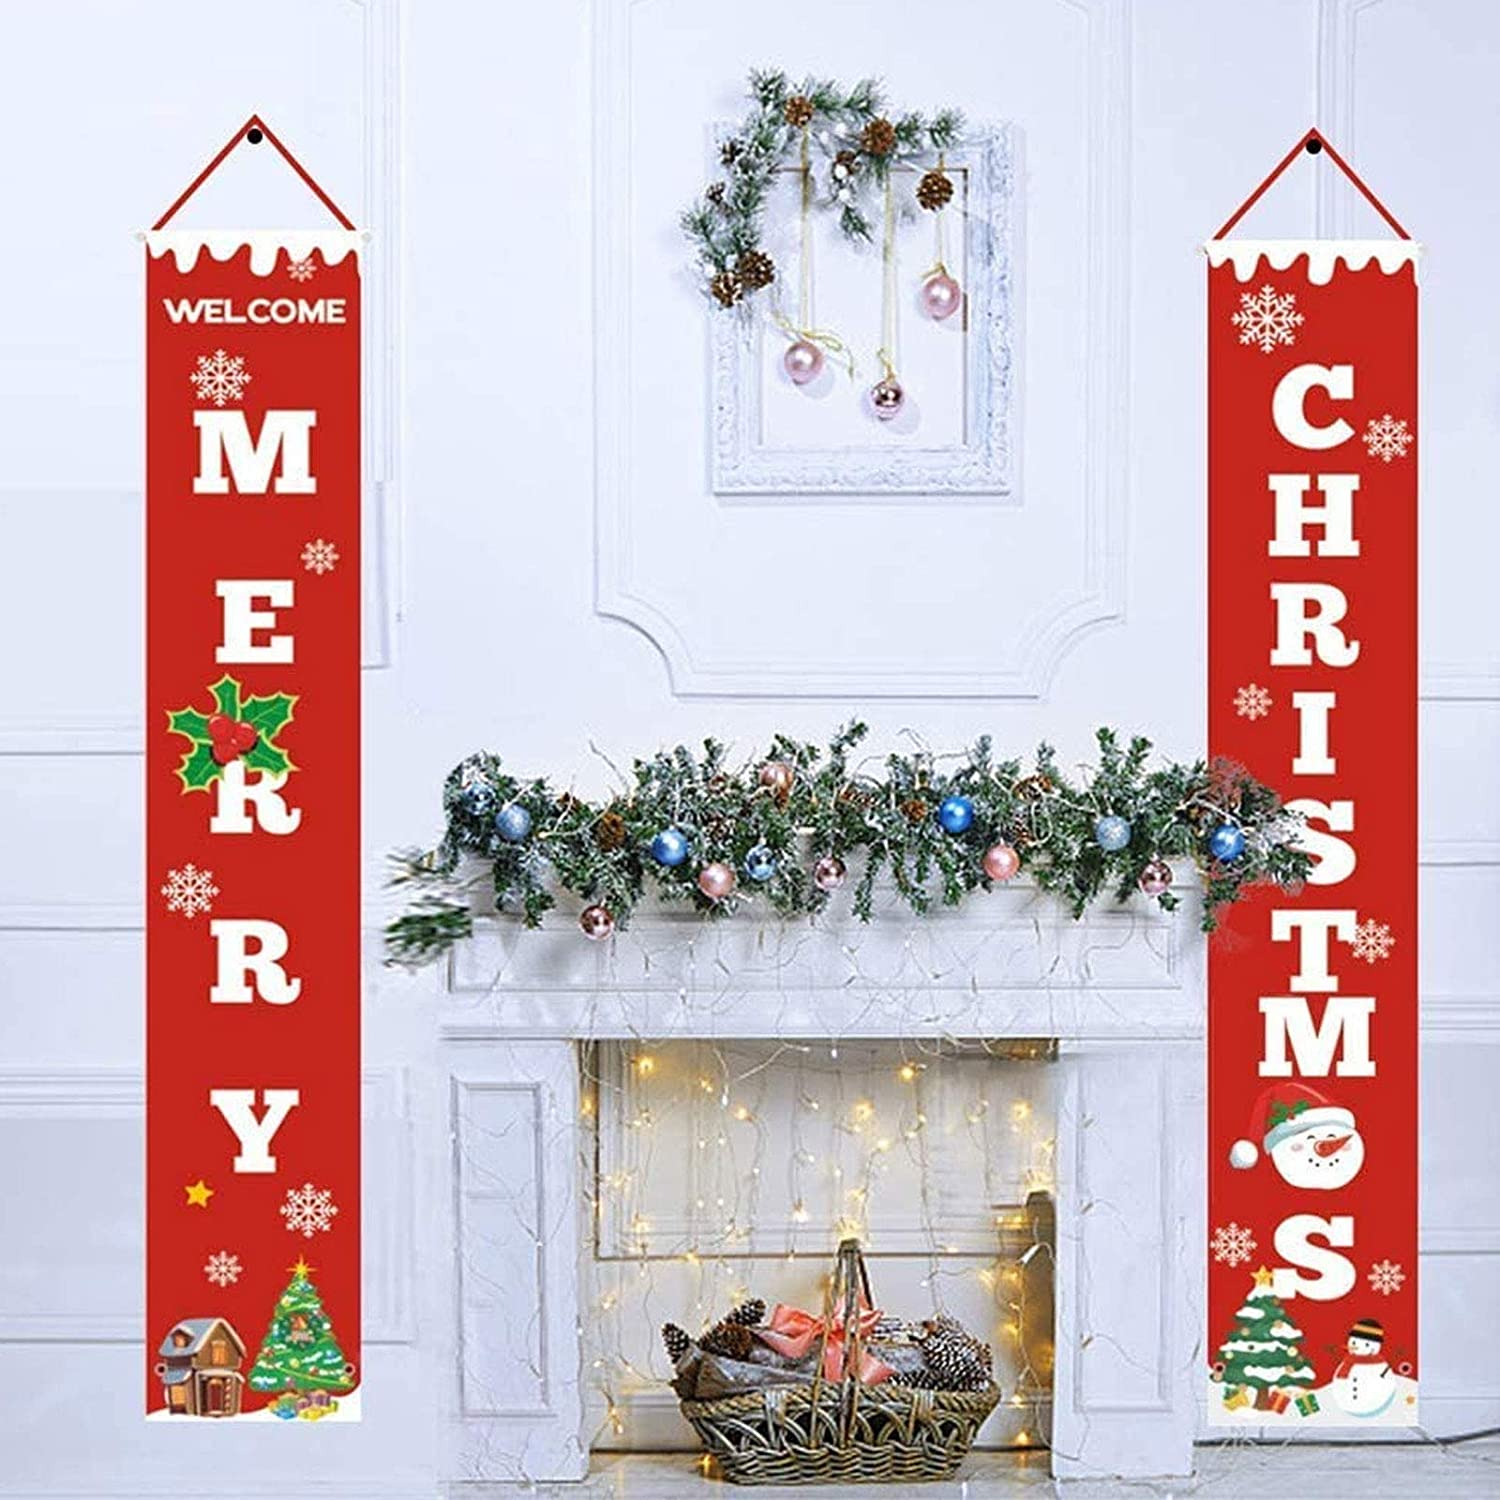 N/G Merry Christmas Porch Sign Santa Claus Porch Sign Christmas Decorations for Home Yard Indoor Outdoor Front Door Wall